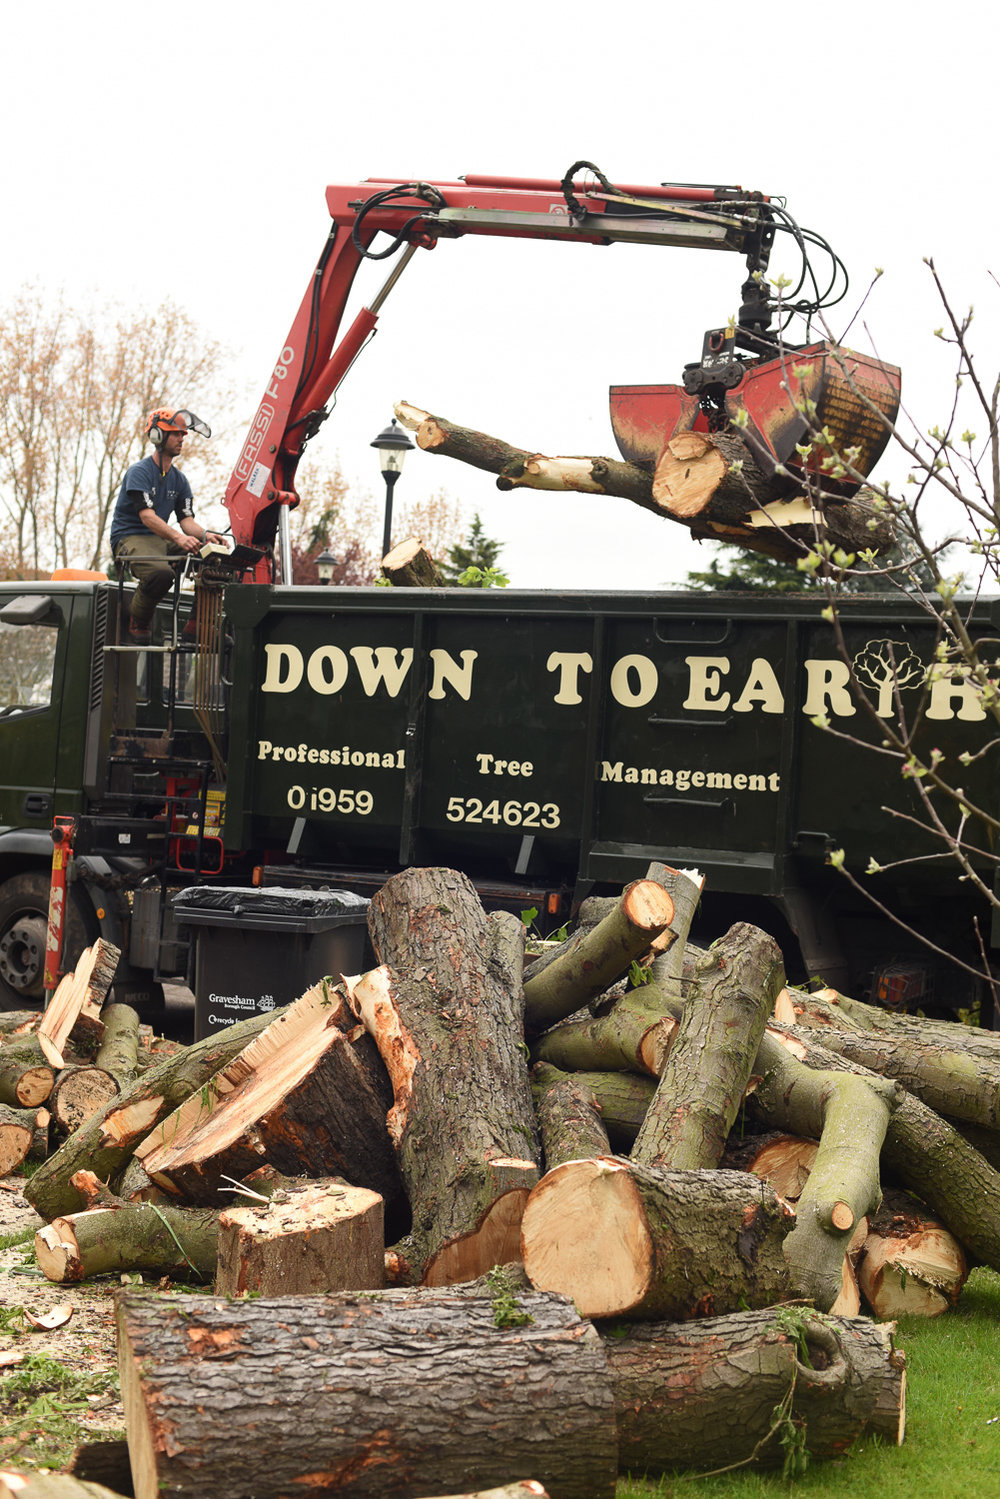 tunbridge-wells-tree-management-services